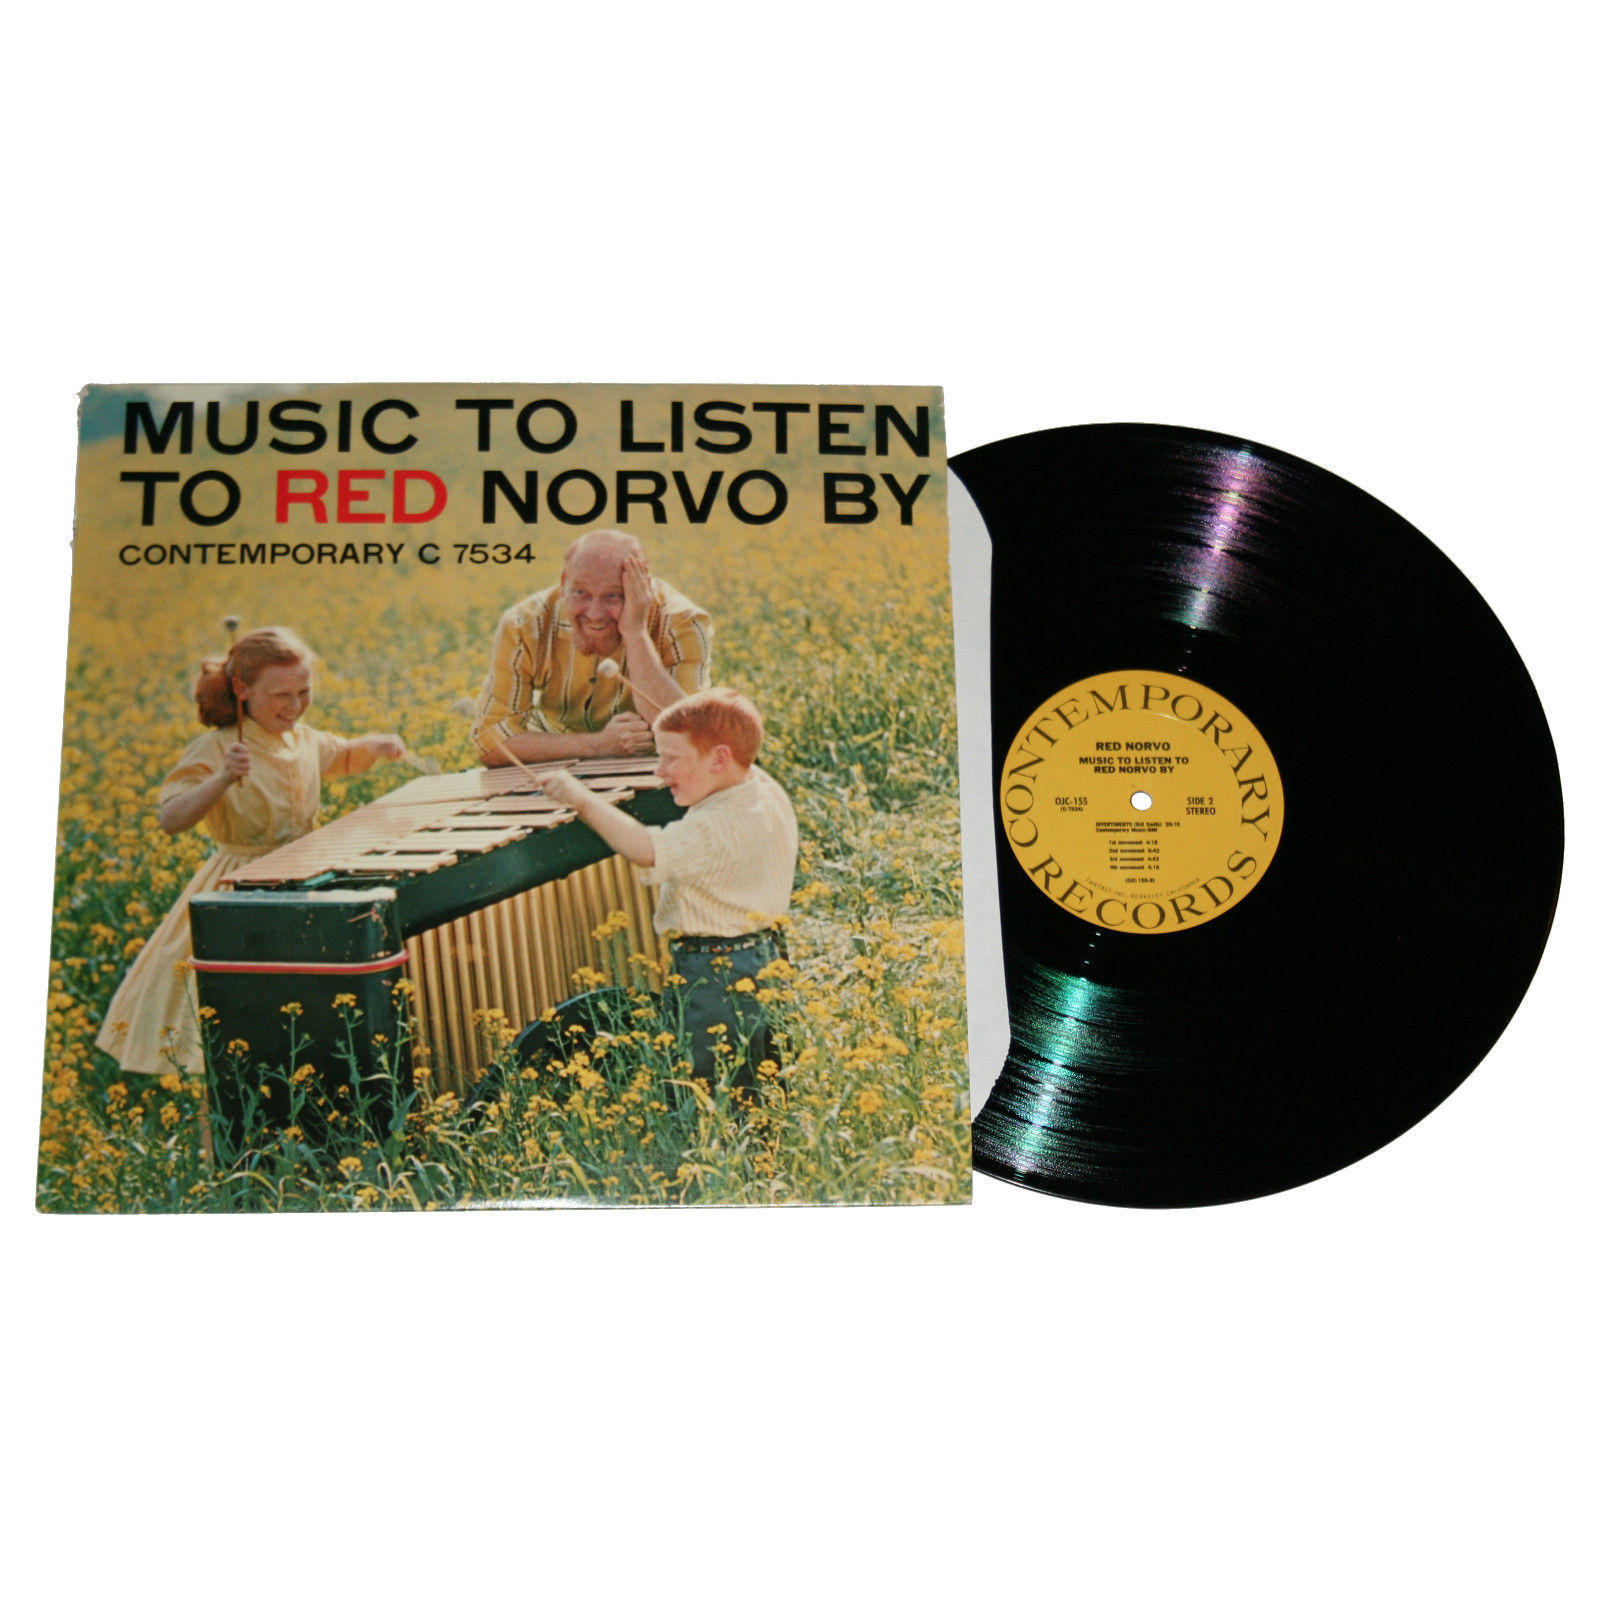 Red Norvo - Music To Listen To Red Norvo By Album